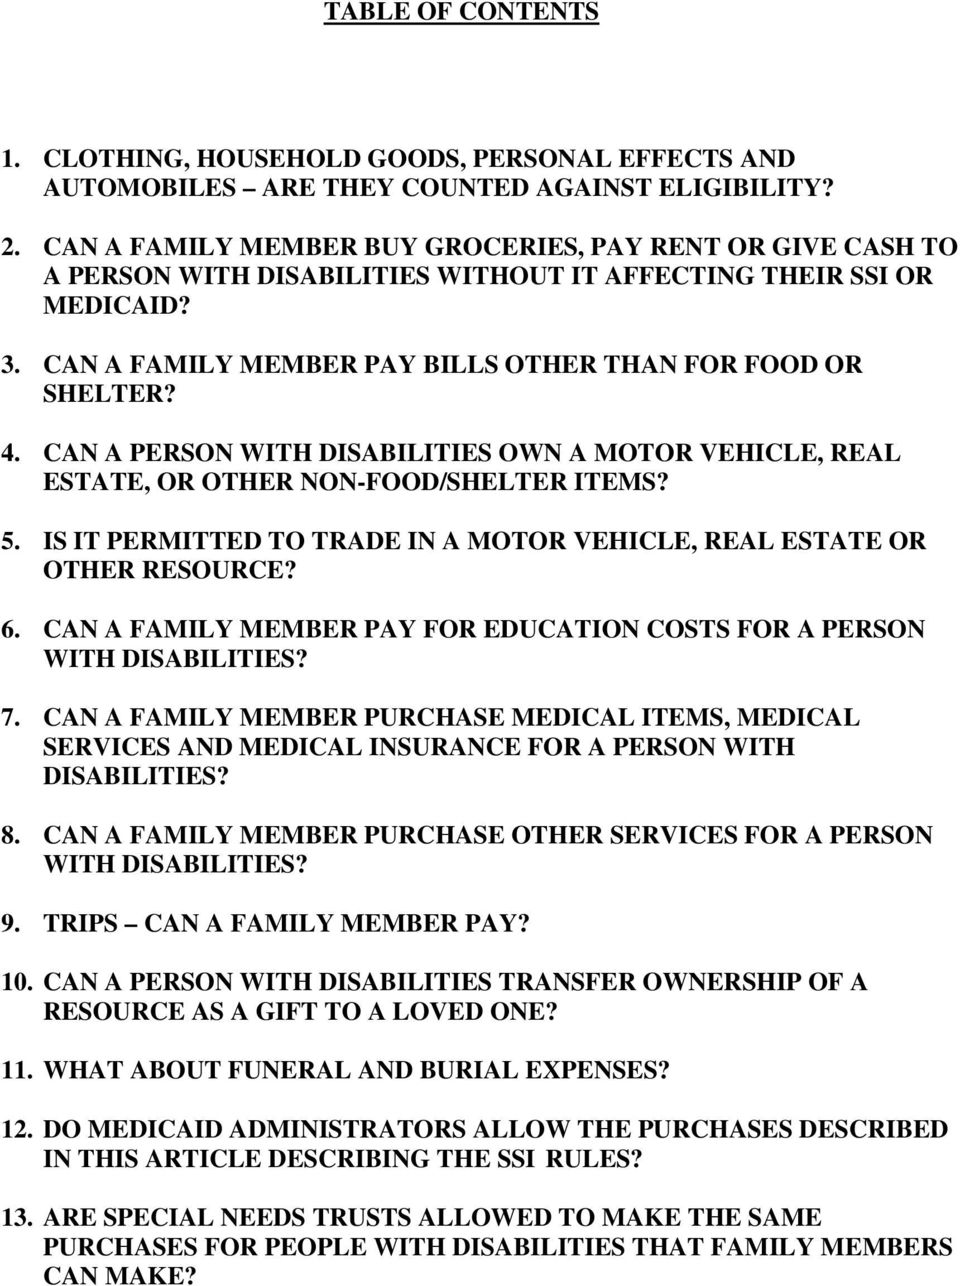 CAN A PERSON WITH DISABILITIES OWN A MOTOR VEHICLE, REAL ESTATE, OR OTHER NON-FOOD/SHELTER ITEMS? 5. IS IT PERMITTED TO TRADE IN A MOTOR VEHICLE, REAL ESTATE OR OTHER RESOURCE? 6.